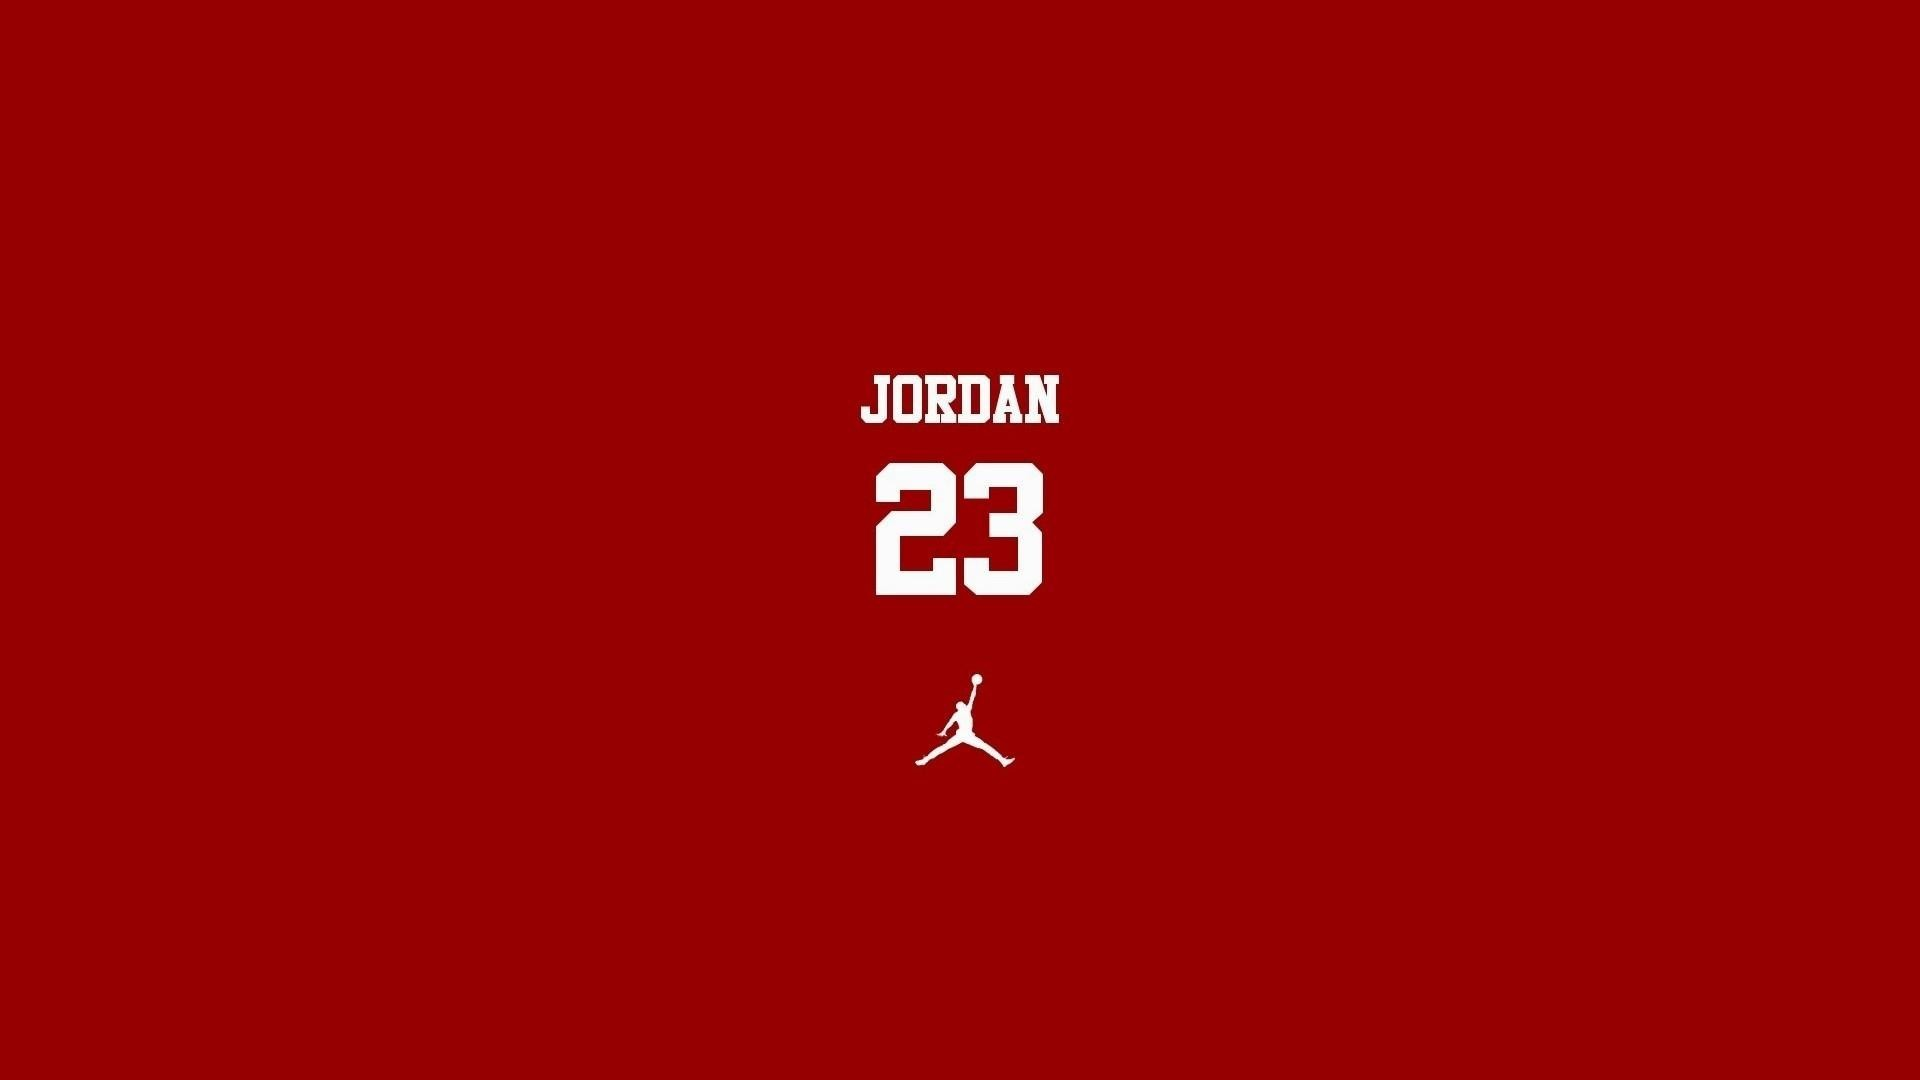 Image Result For Chicago Bulls Wallpaper Beautiful Jordan Background Desktop Pc